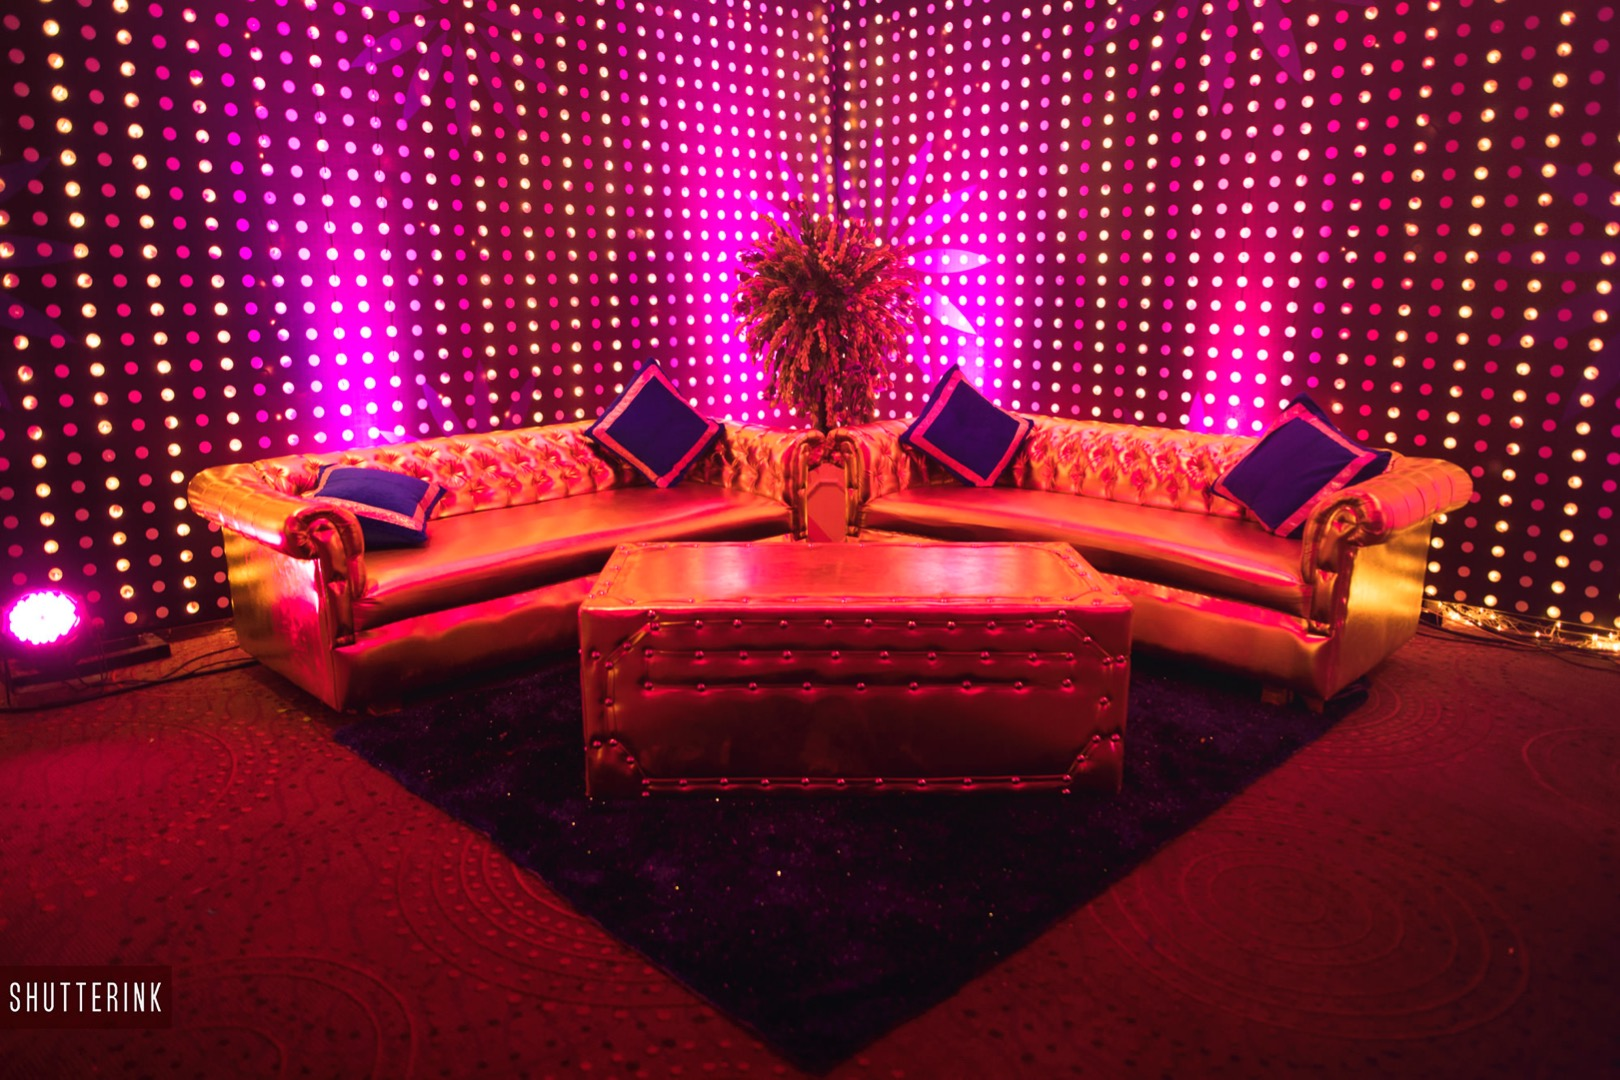 LED Lit Indoor Seating Decor